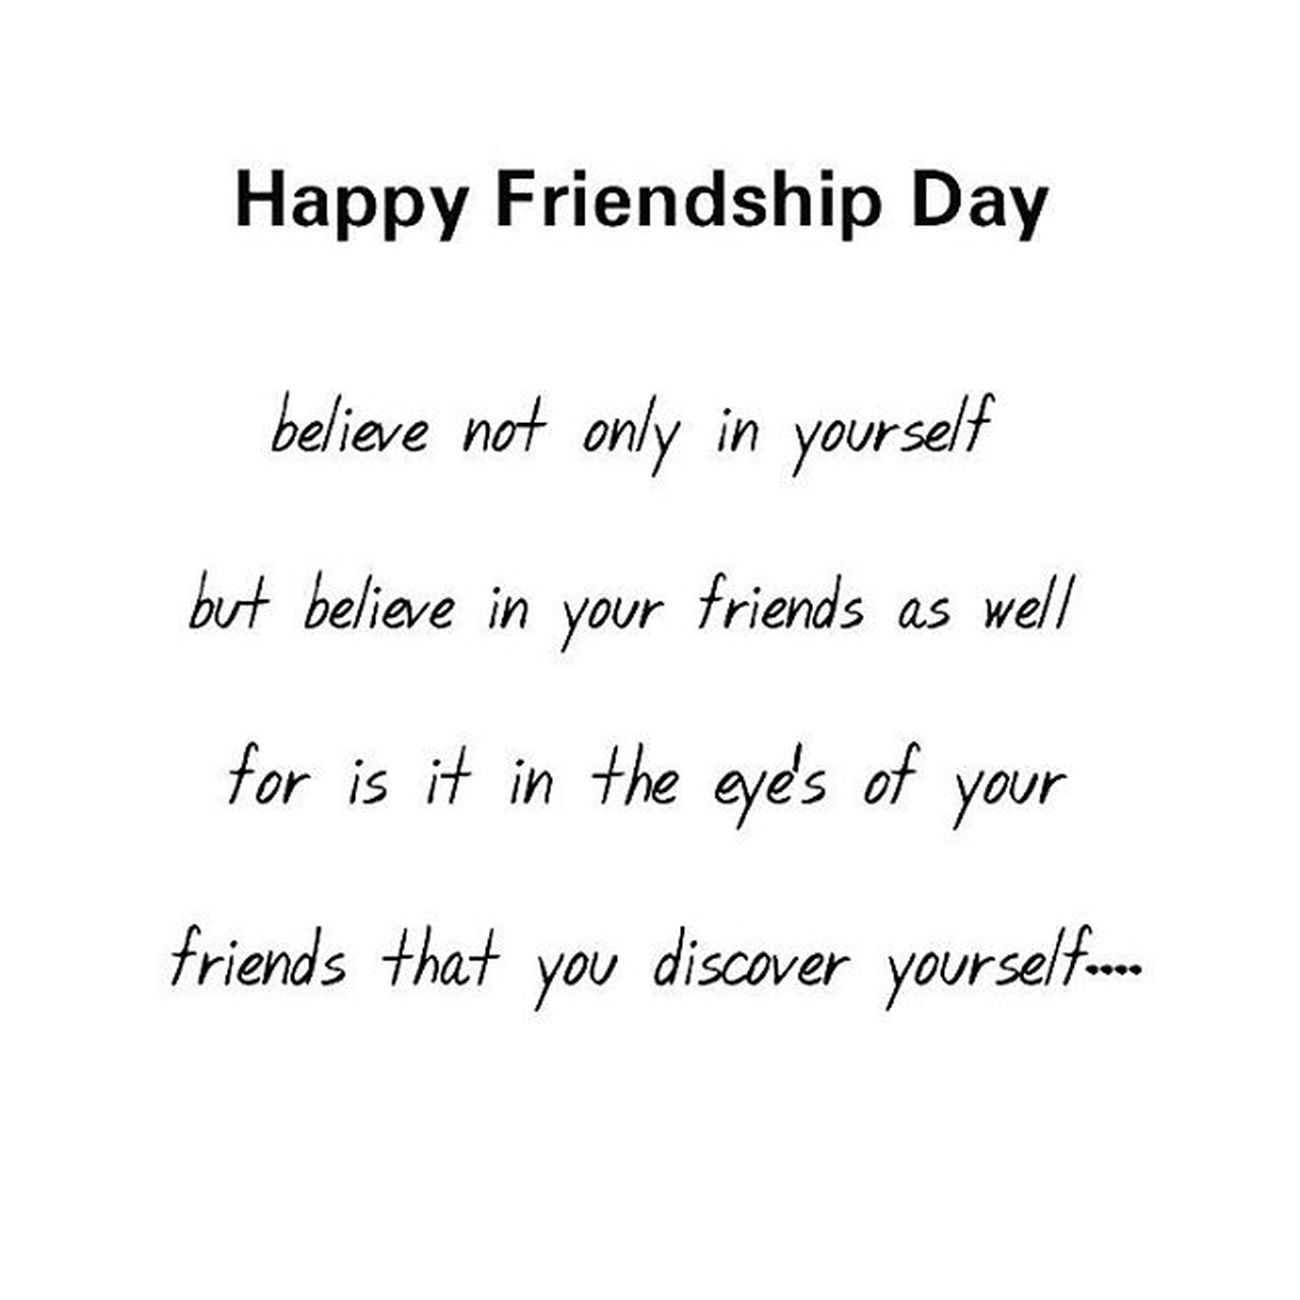 HappyFriendshipDay Friendship Lovefriends Sweetday Friendday